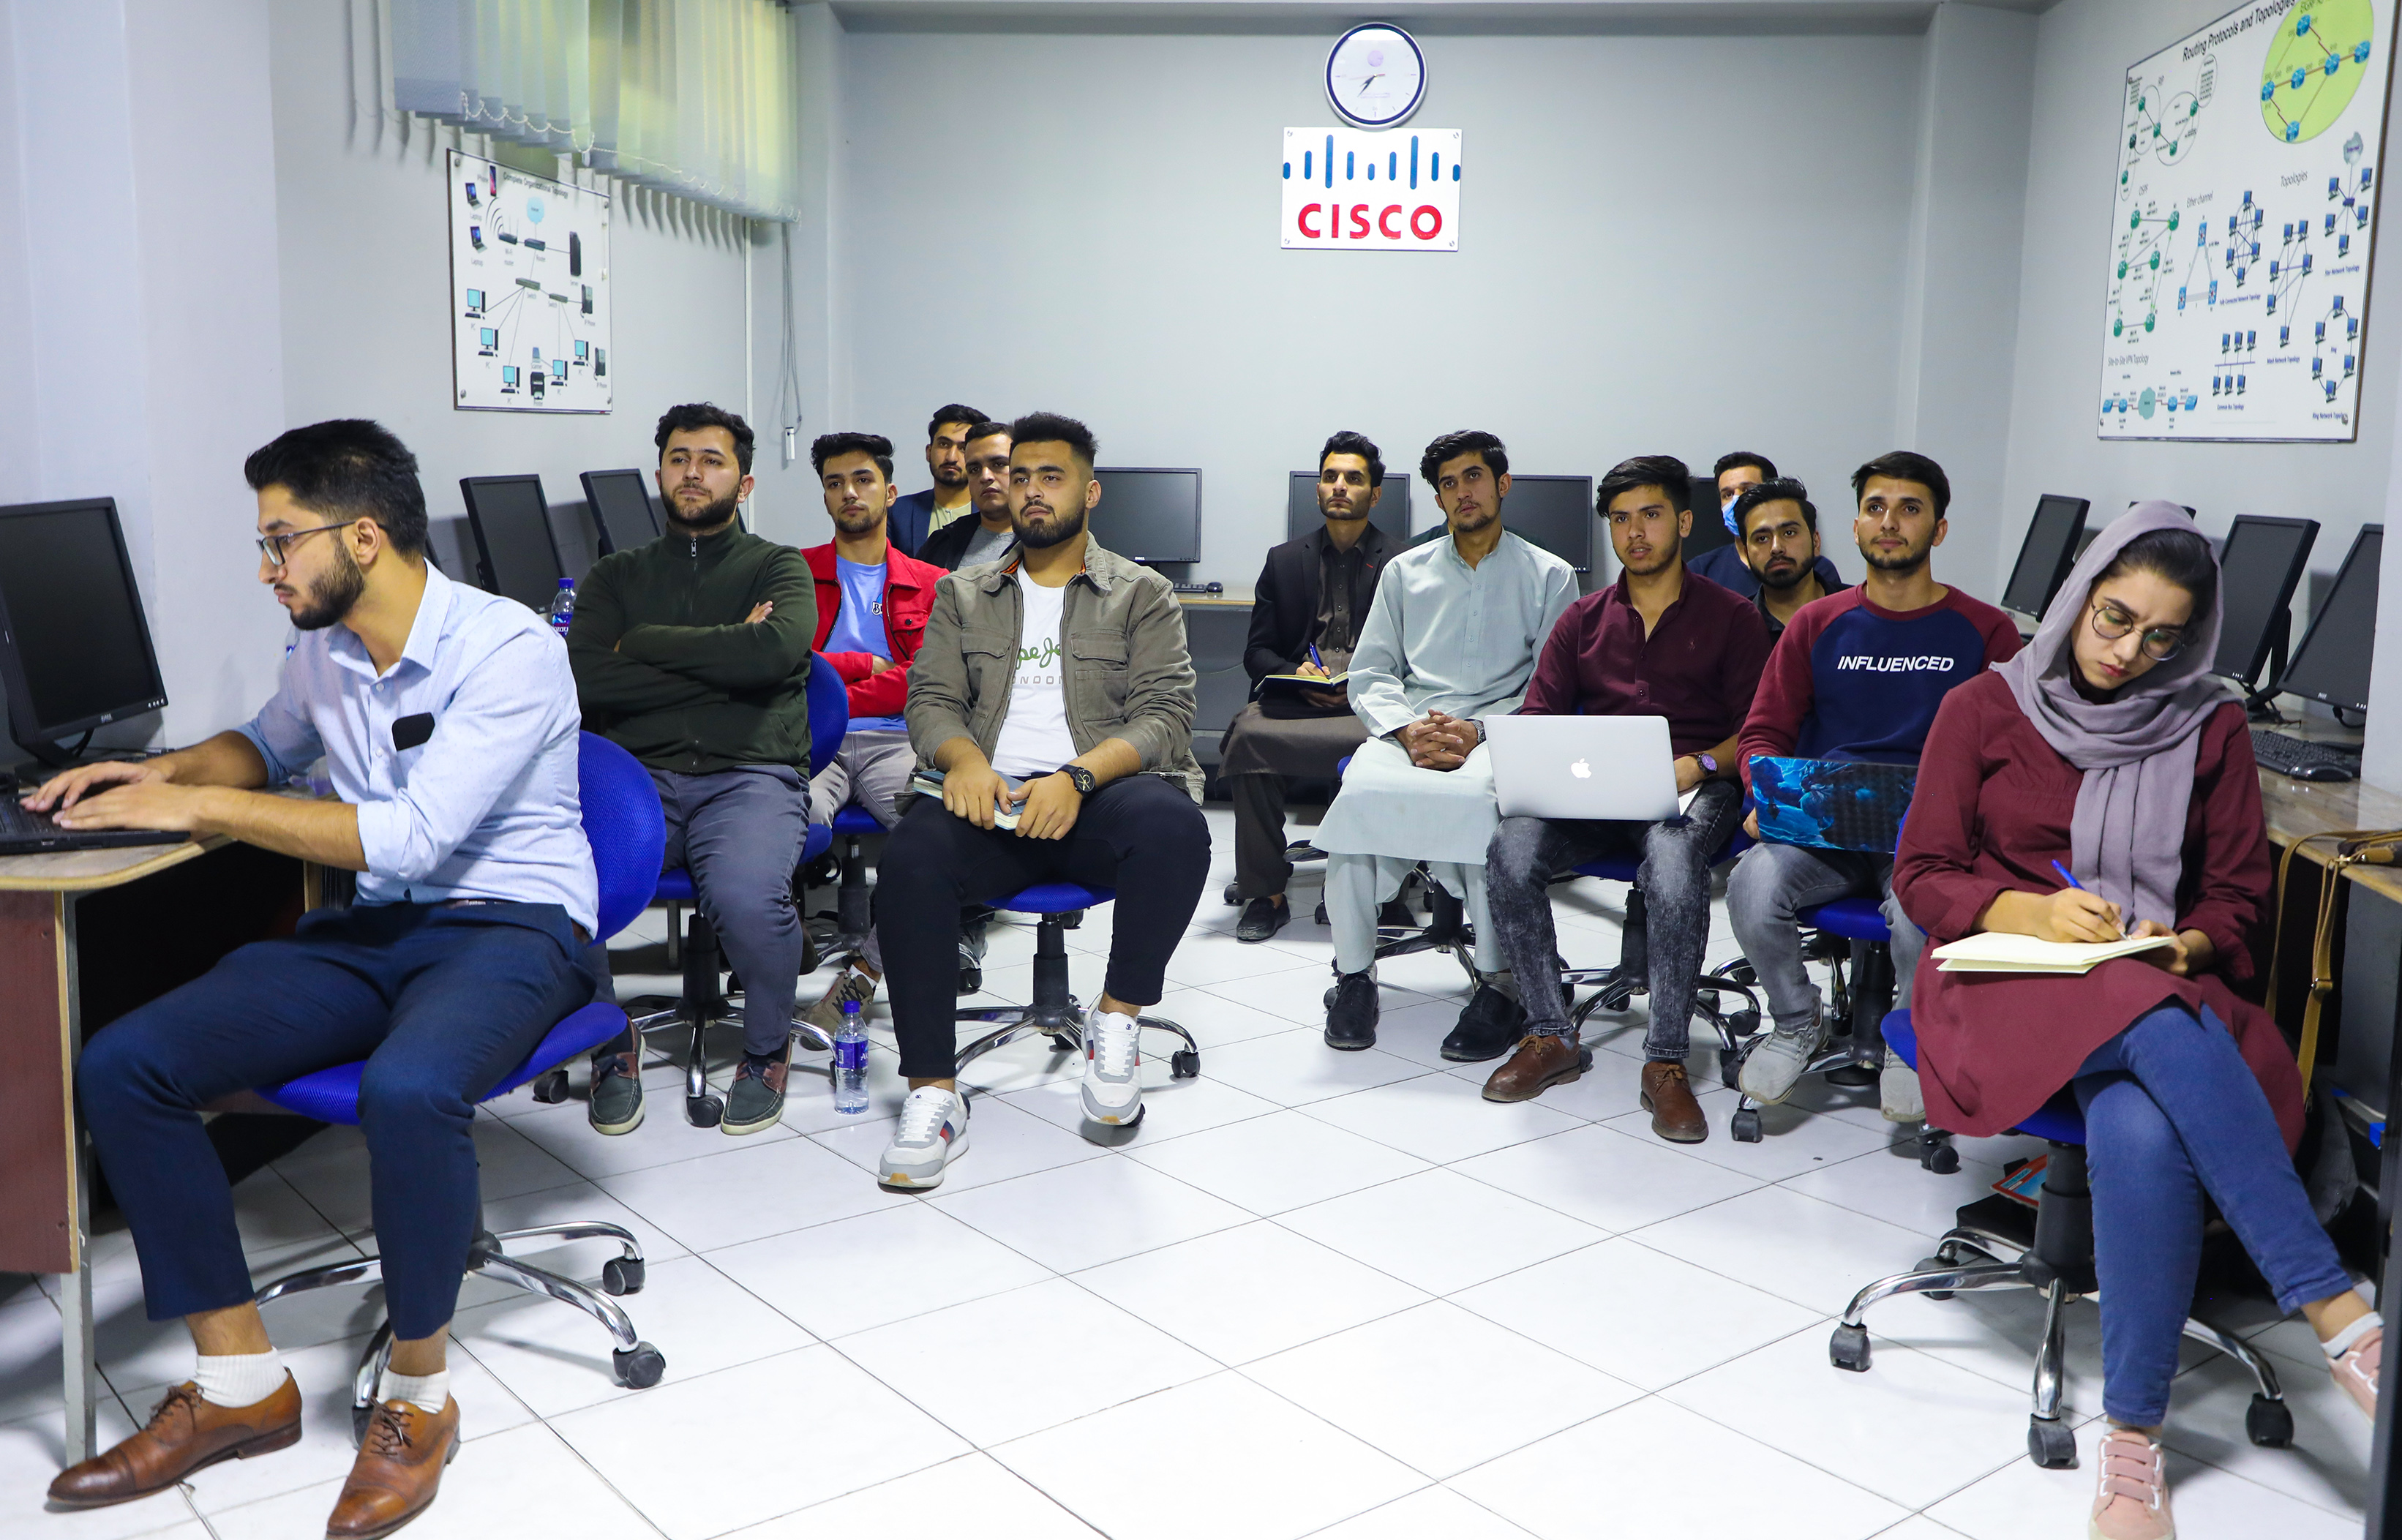 Kardan University's Computer Science Department Organizes Training Session on Routing and Switching